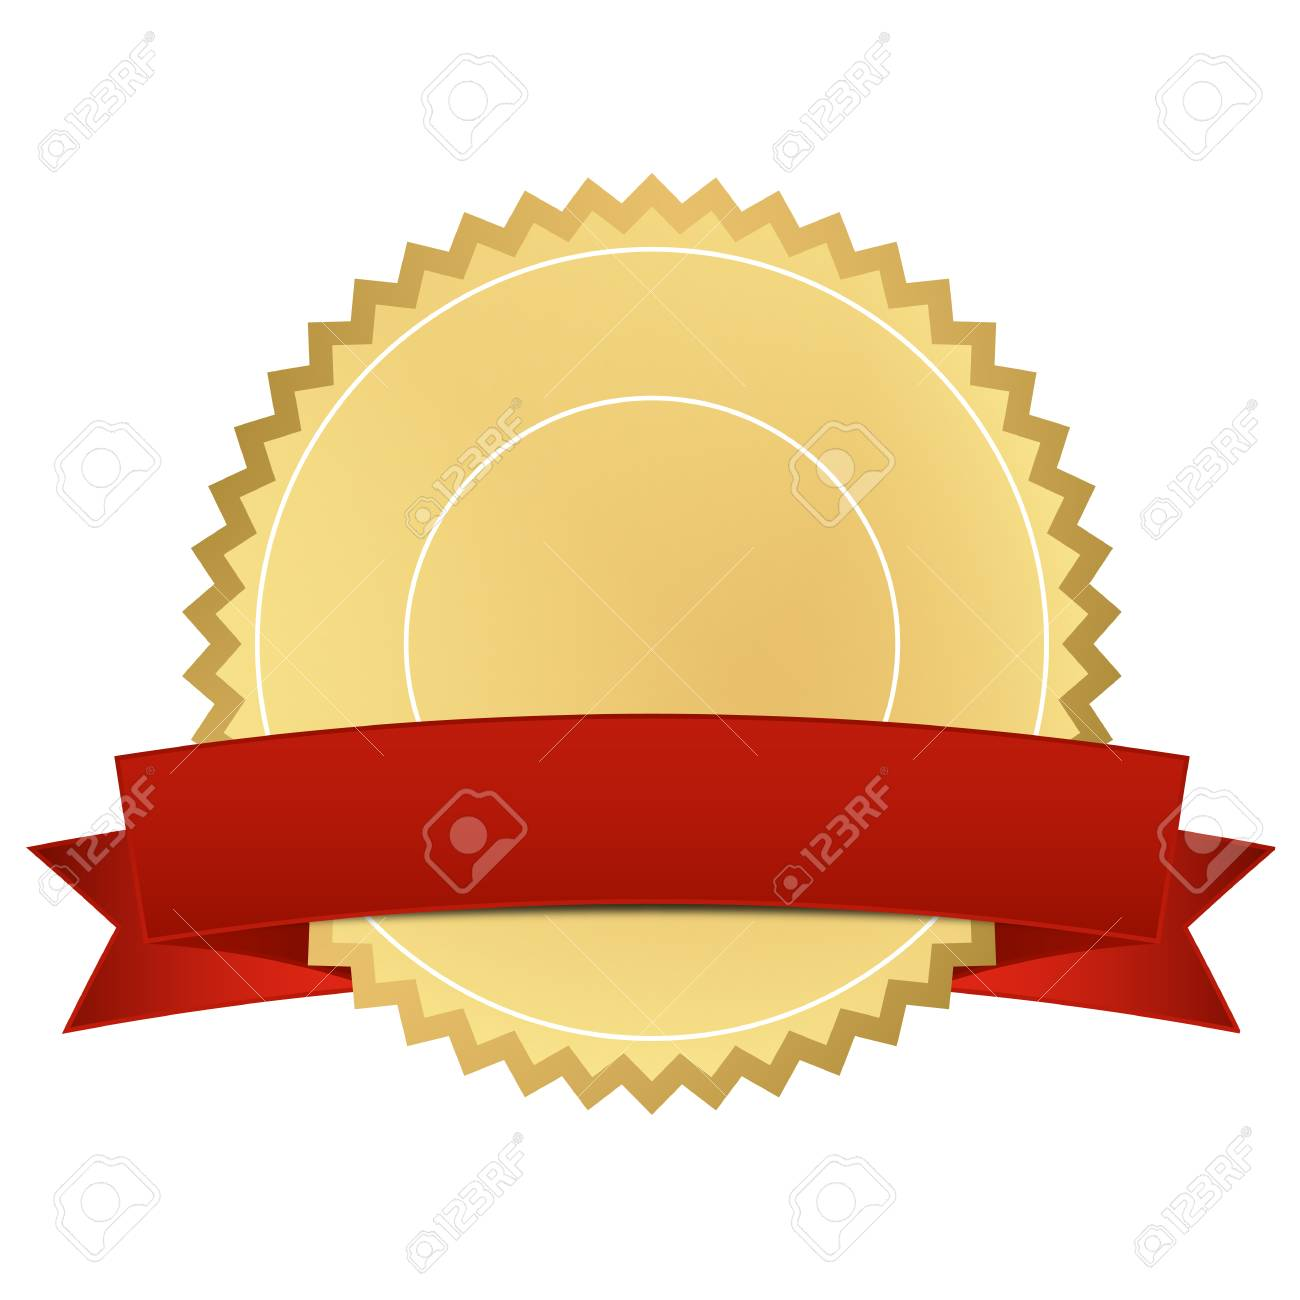 certificate with red banner royalty free cliparts vectors and rh 123rf com vector certificate vector certificate border